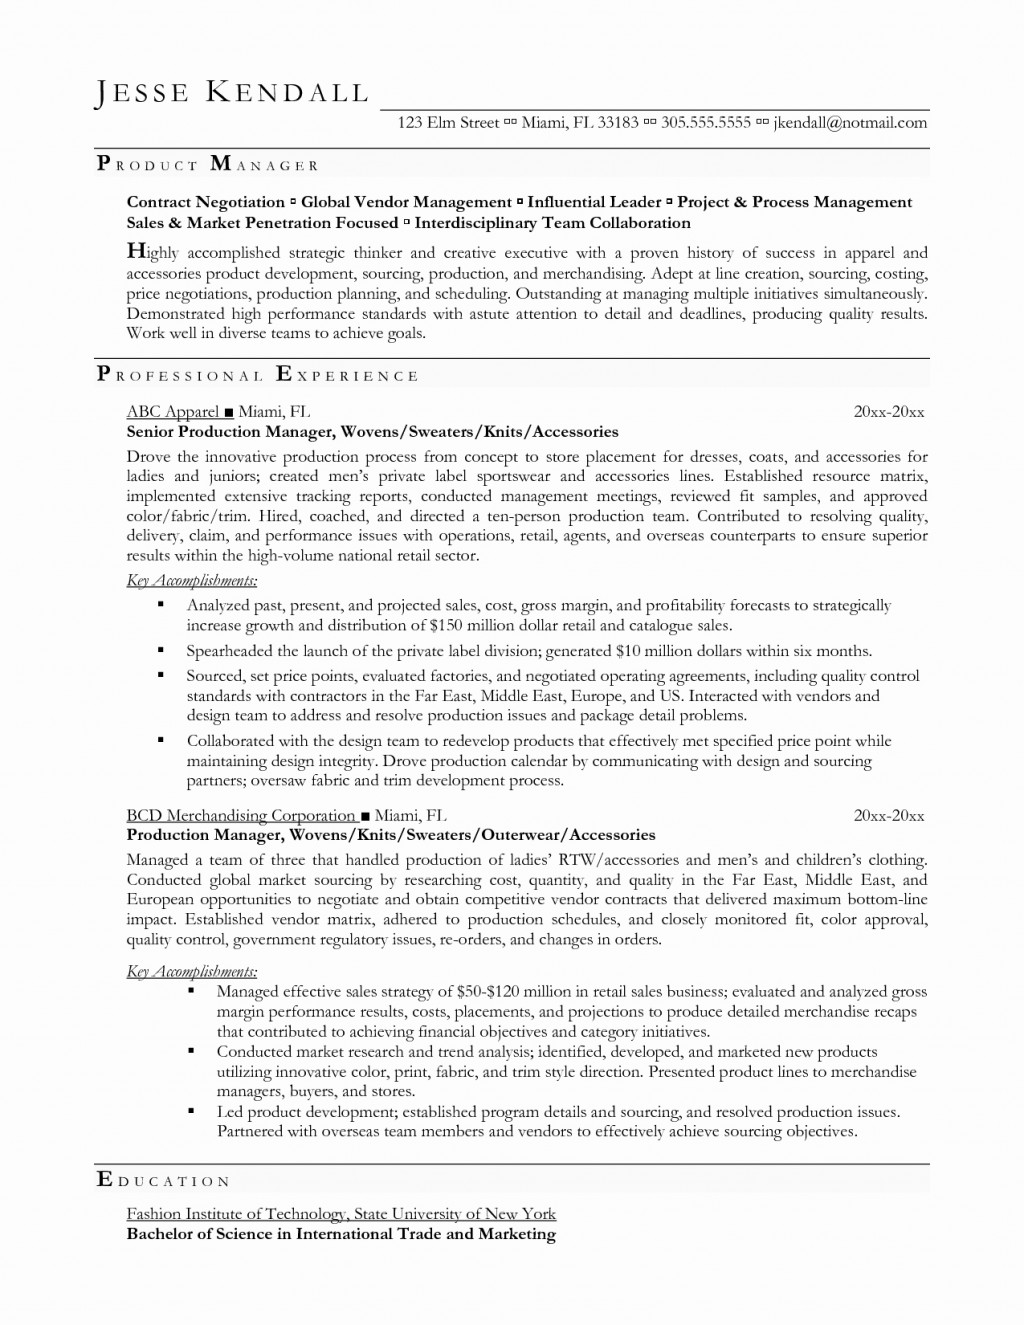 009 Bestay Writing Service Reddit Example Production Supervisor Resume Format Of Grant Writer Cover Letter Beautiful Best Essay Uk 2018 Large